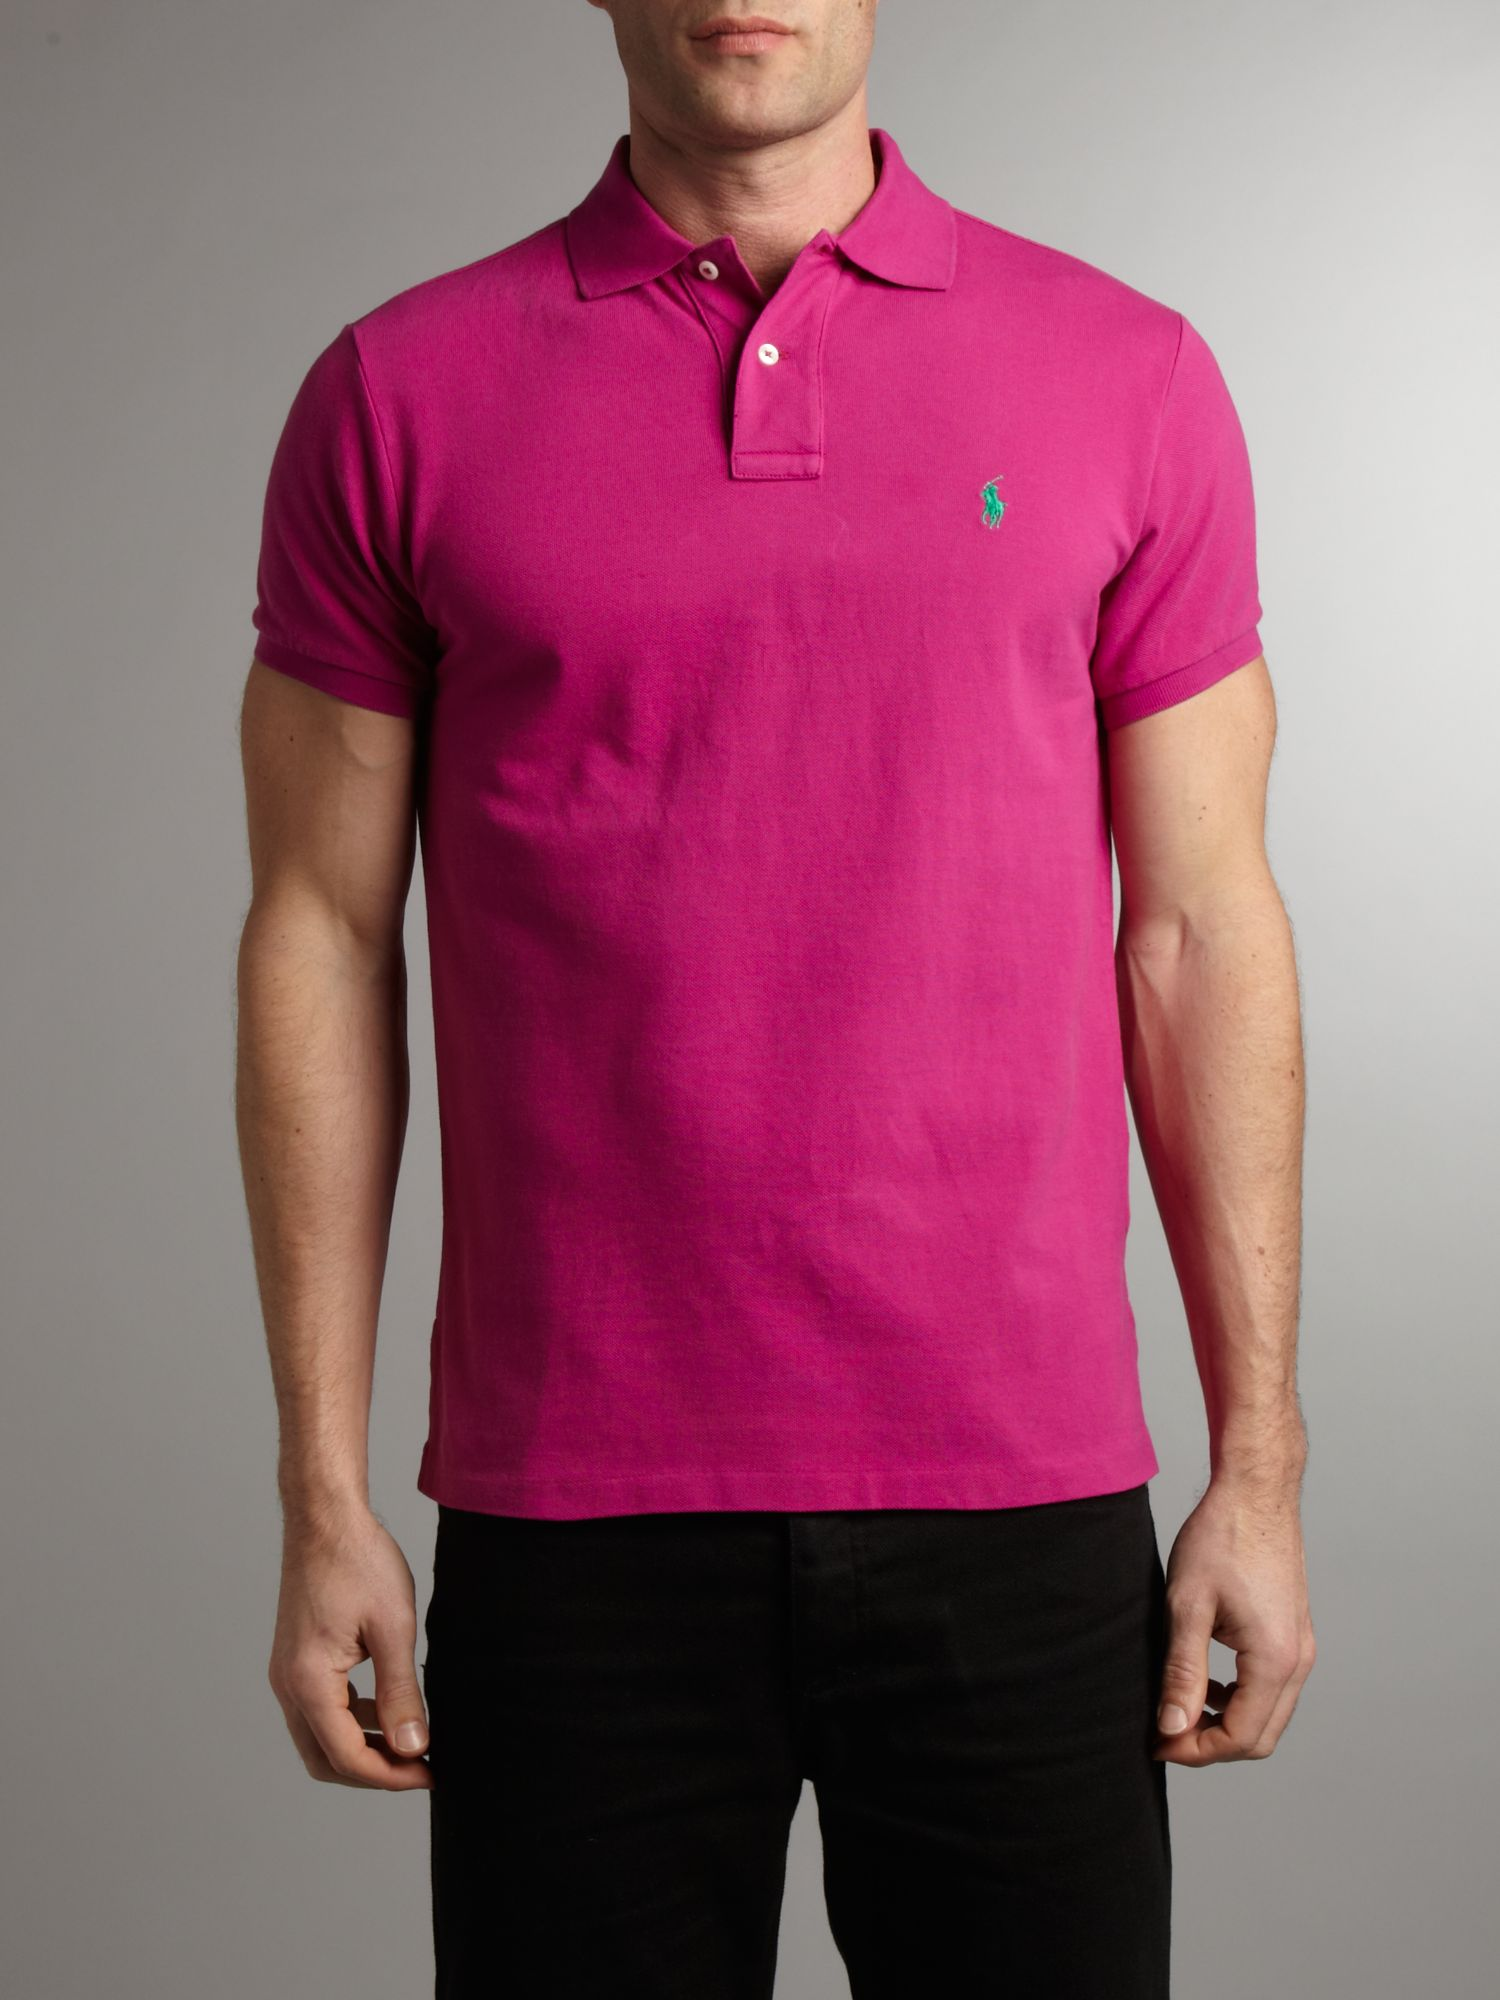 Polo Ralph Lauren Custom Fit Polo Shirt In Pink For Men Lyst